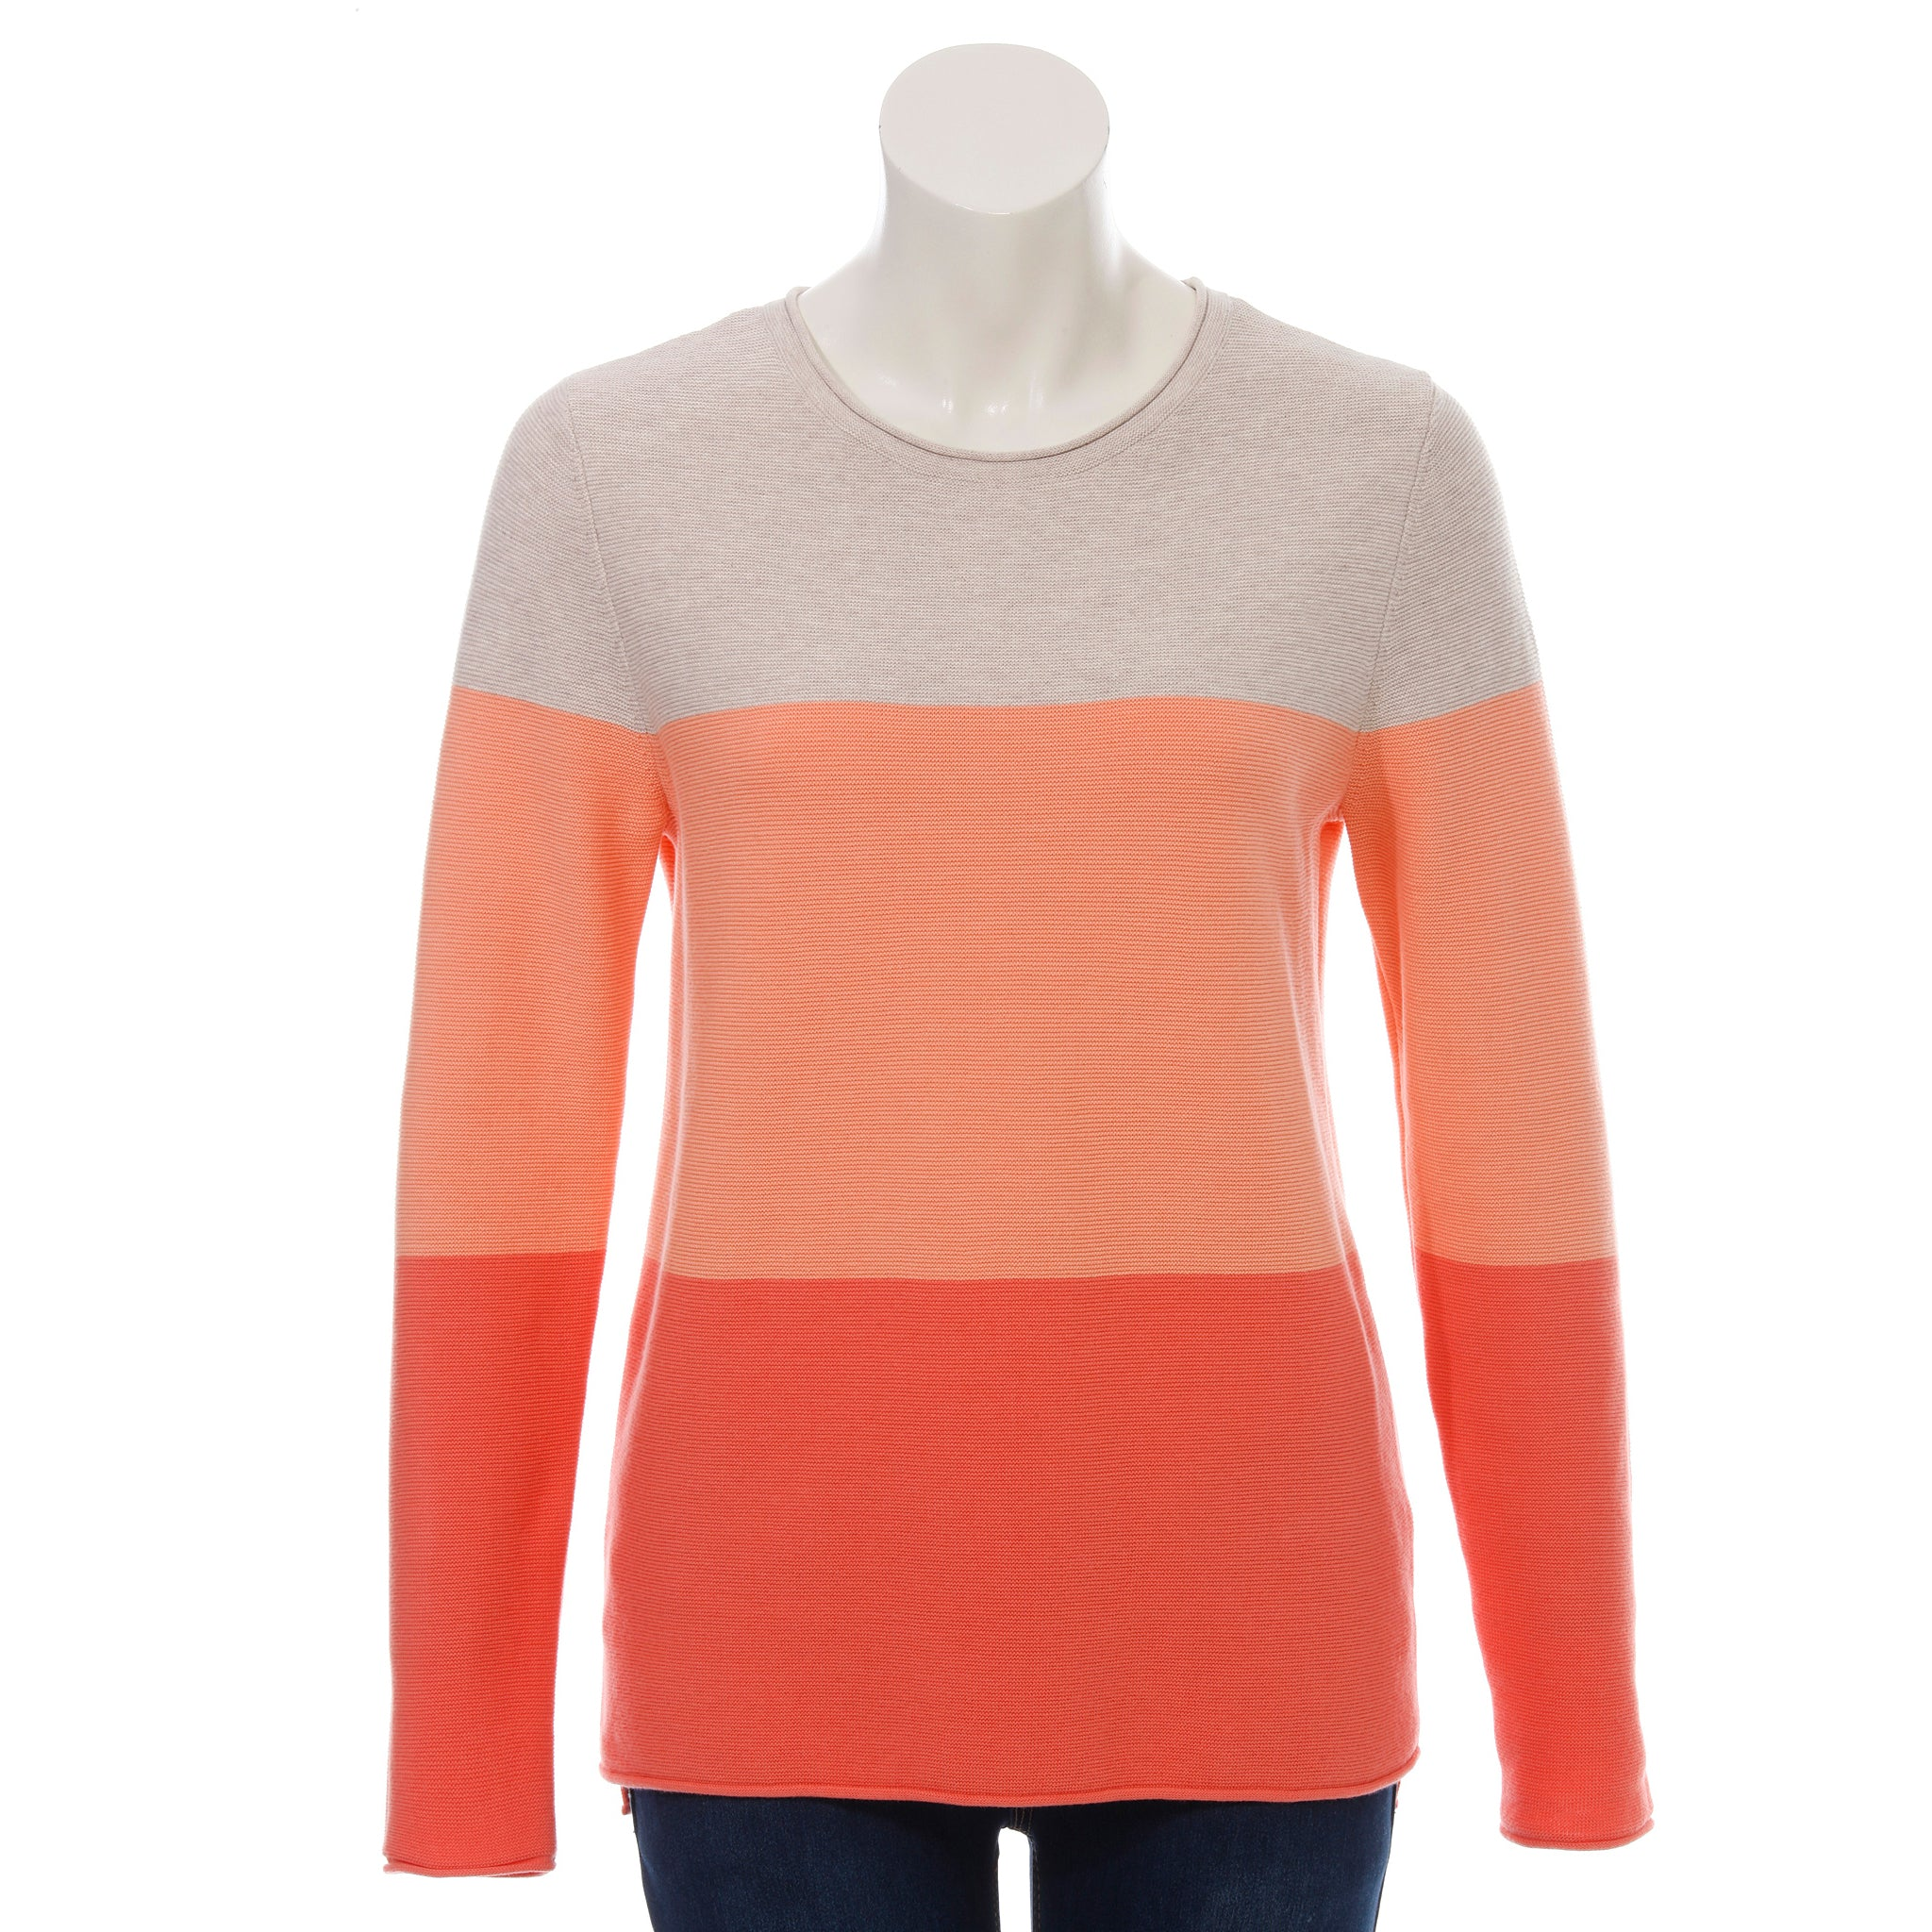 Via Appia Colour Block Sweater Coral